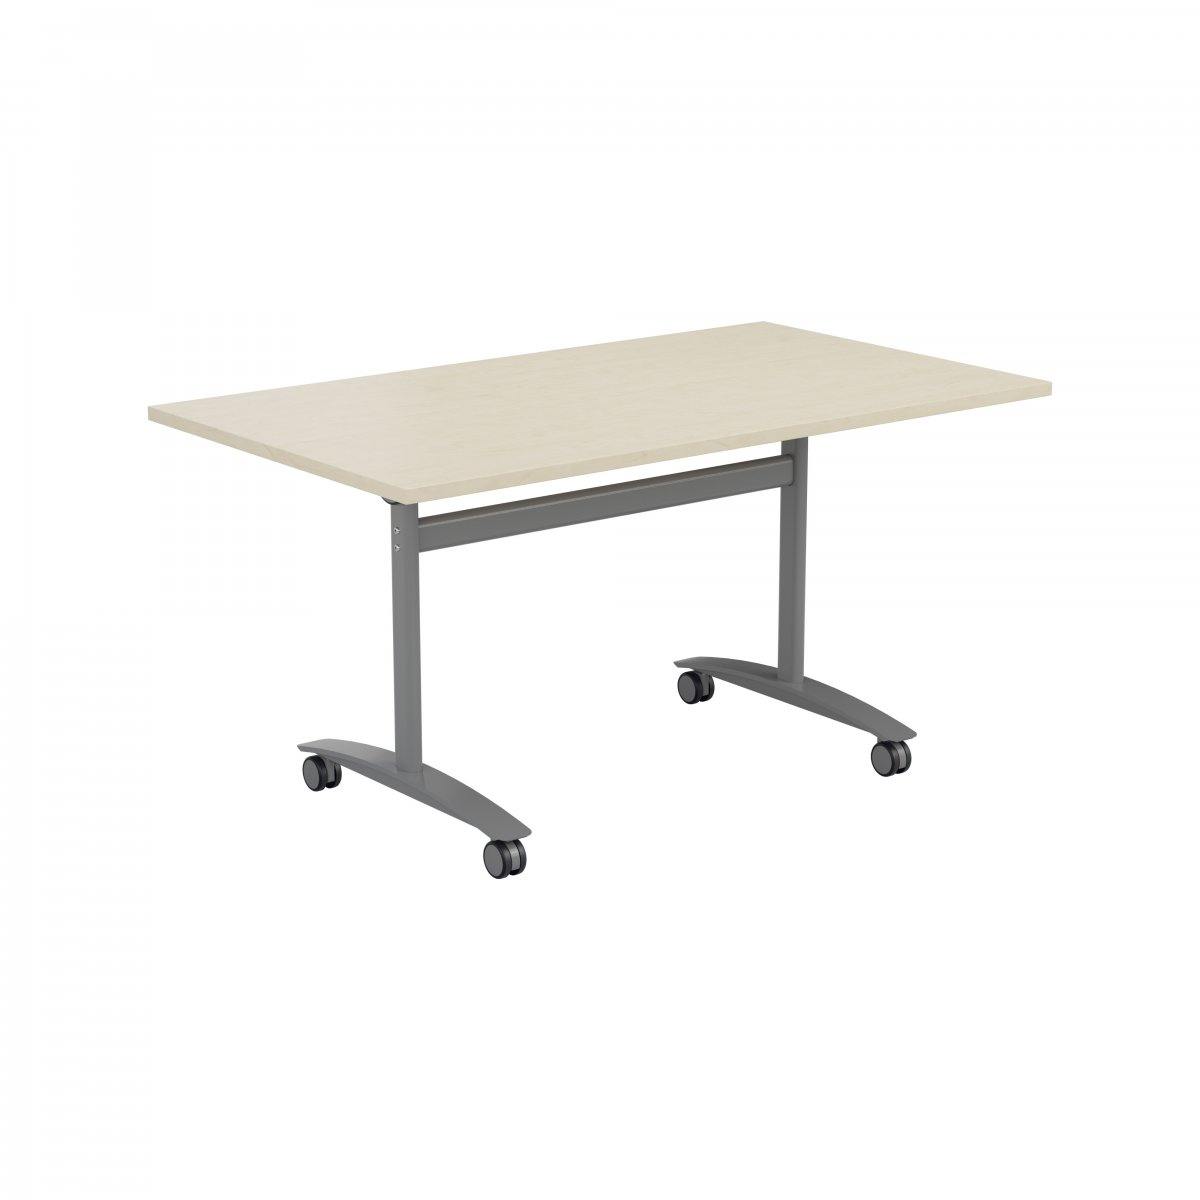 One Tilting Table 1600 X 800 Silver Legs Maple Top